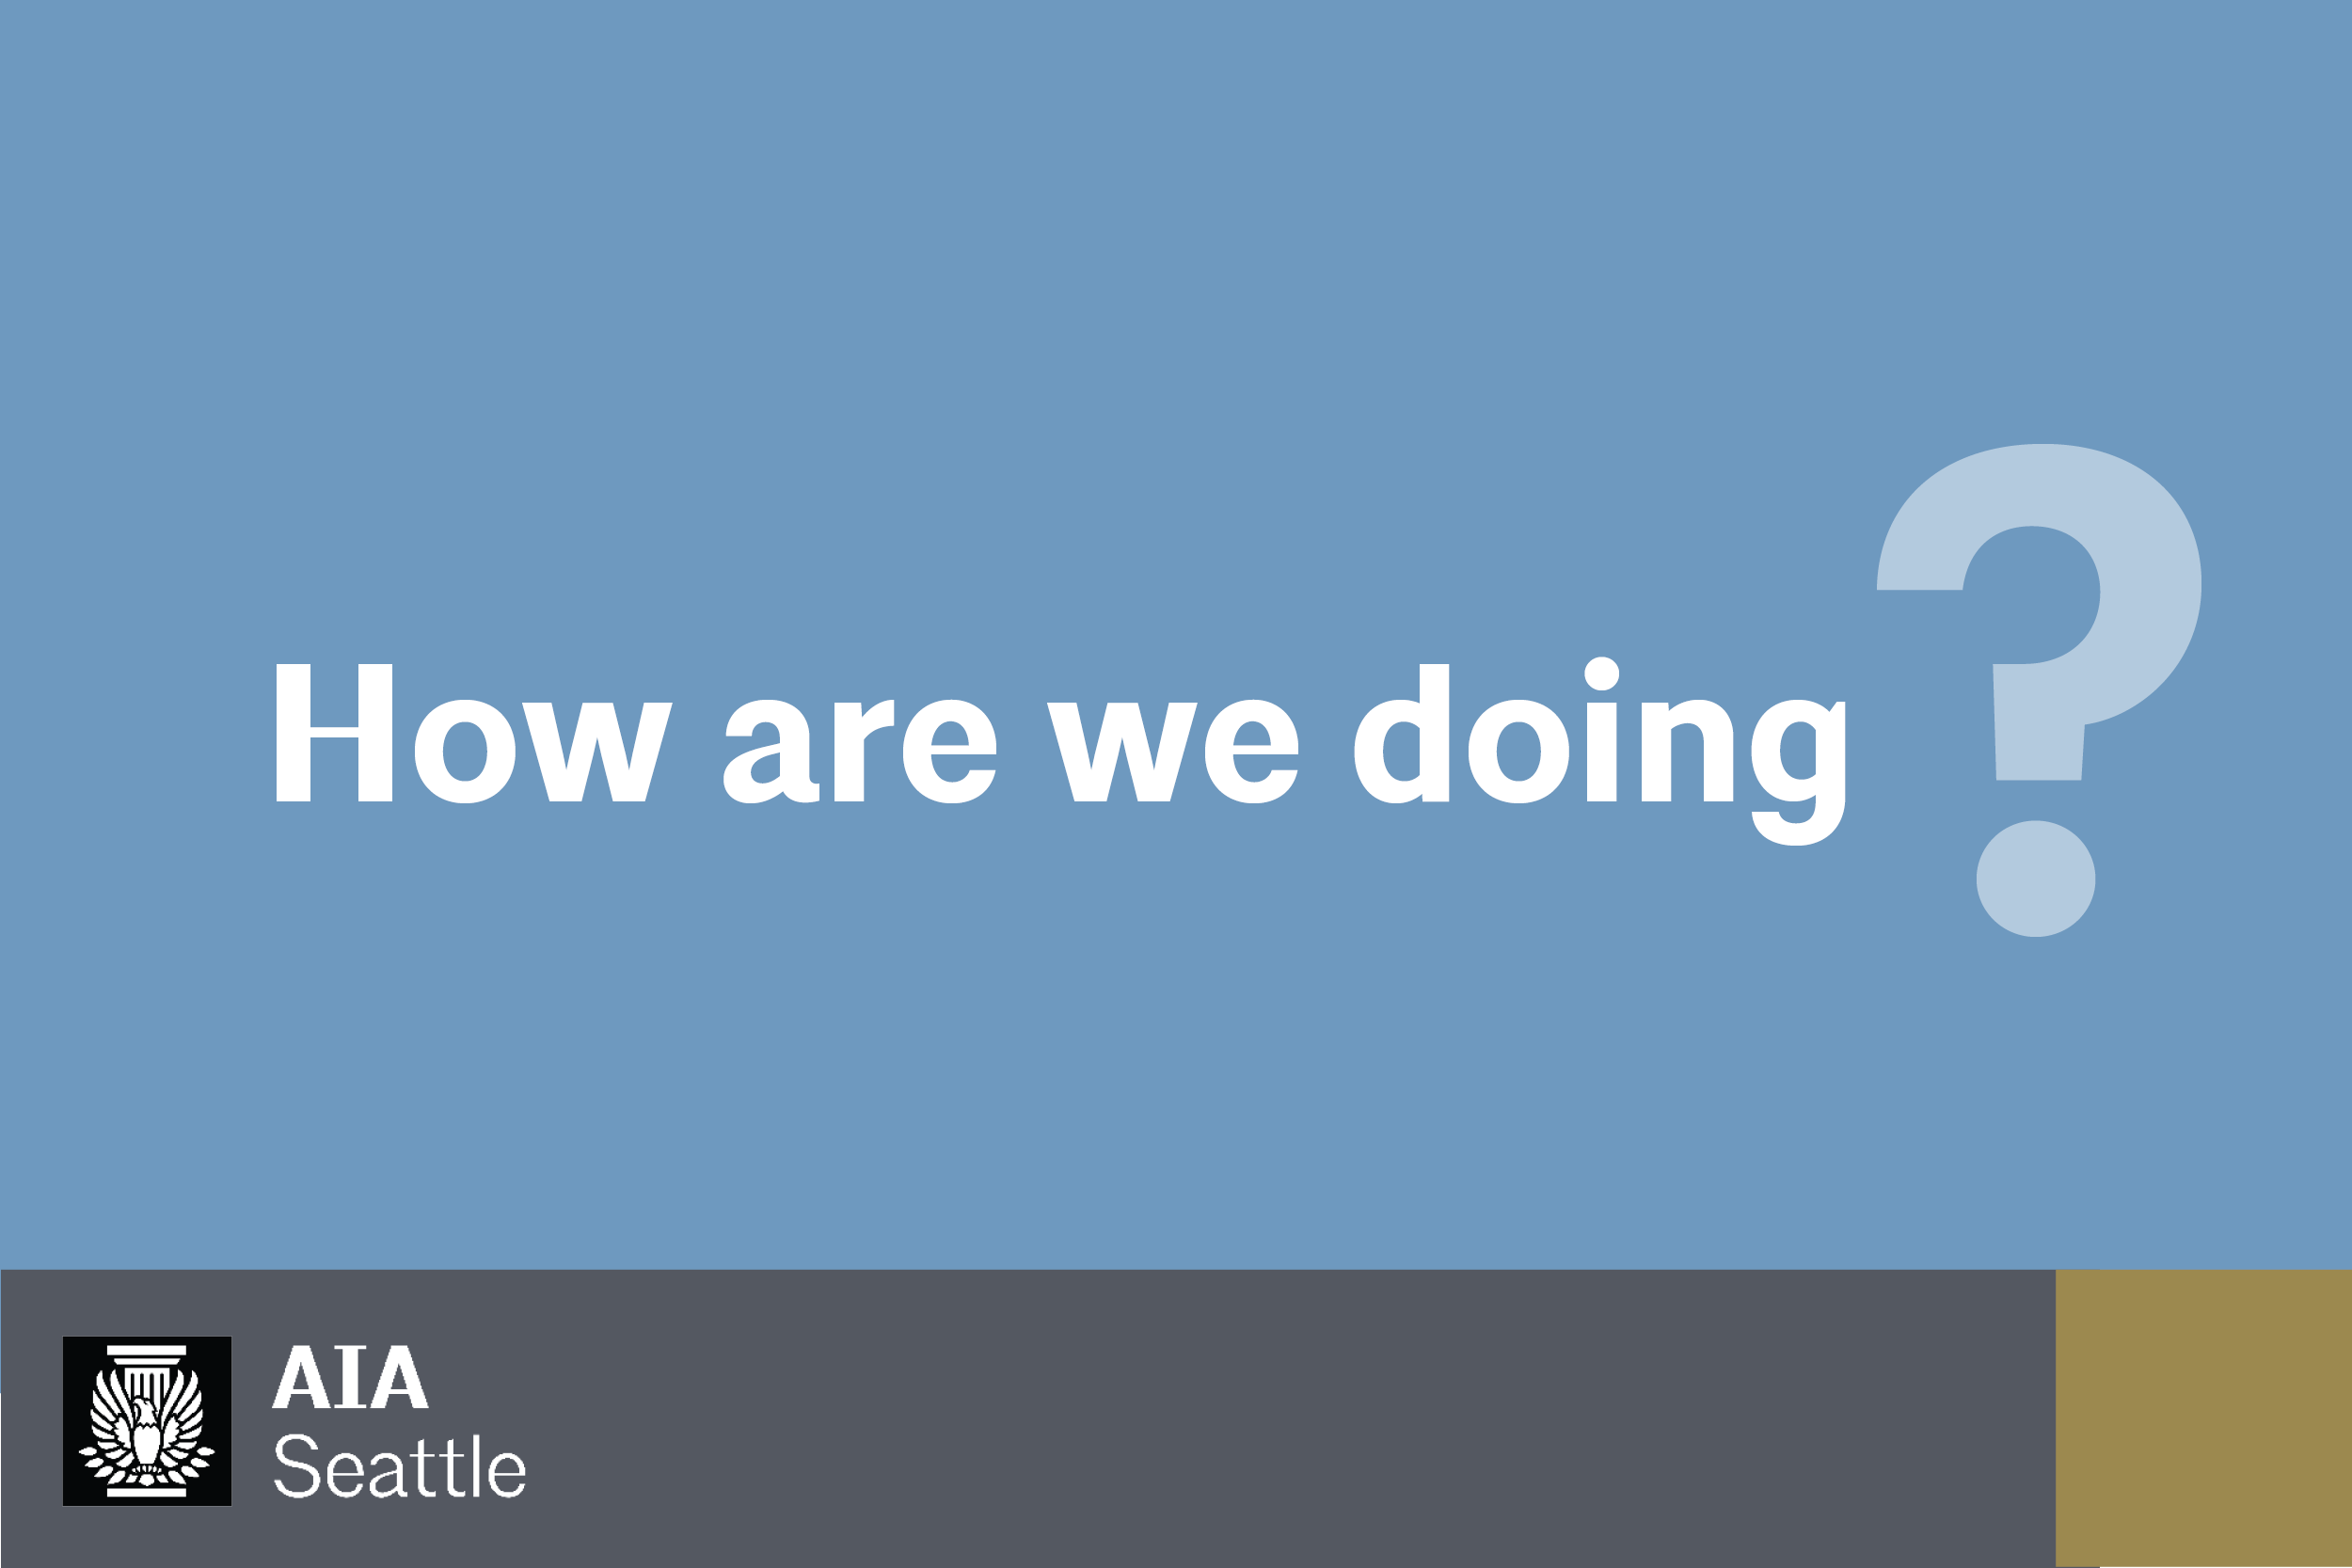 AIA Seattle needs to hear what's important from our members and non-members in order to be a better resource for the design community and a leading advocate of well-designed, livable spaces. Your feedback matters!